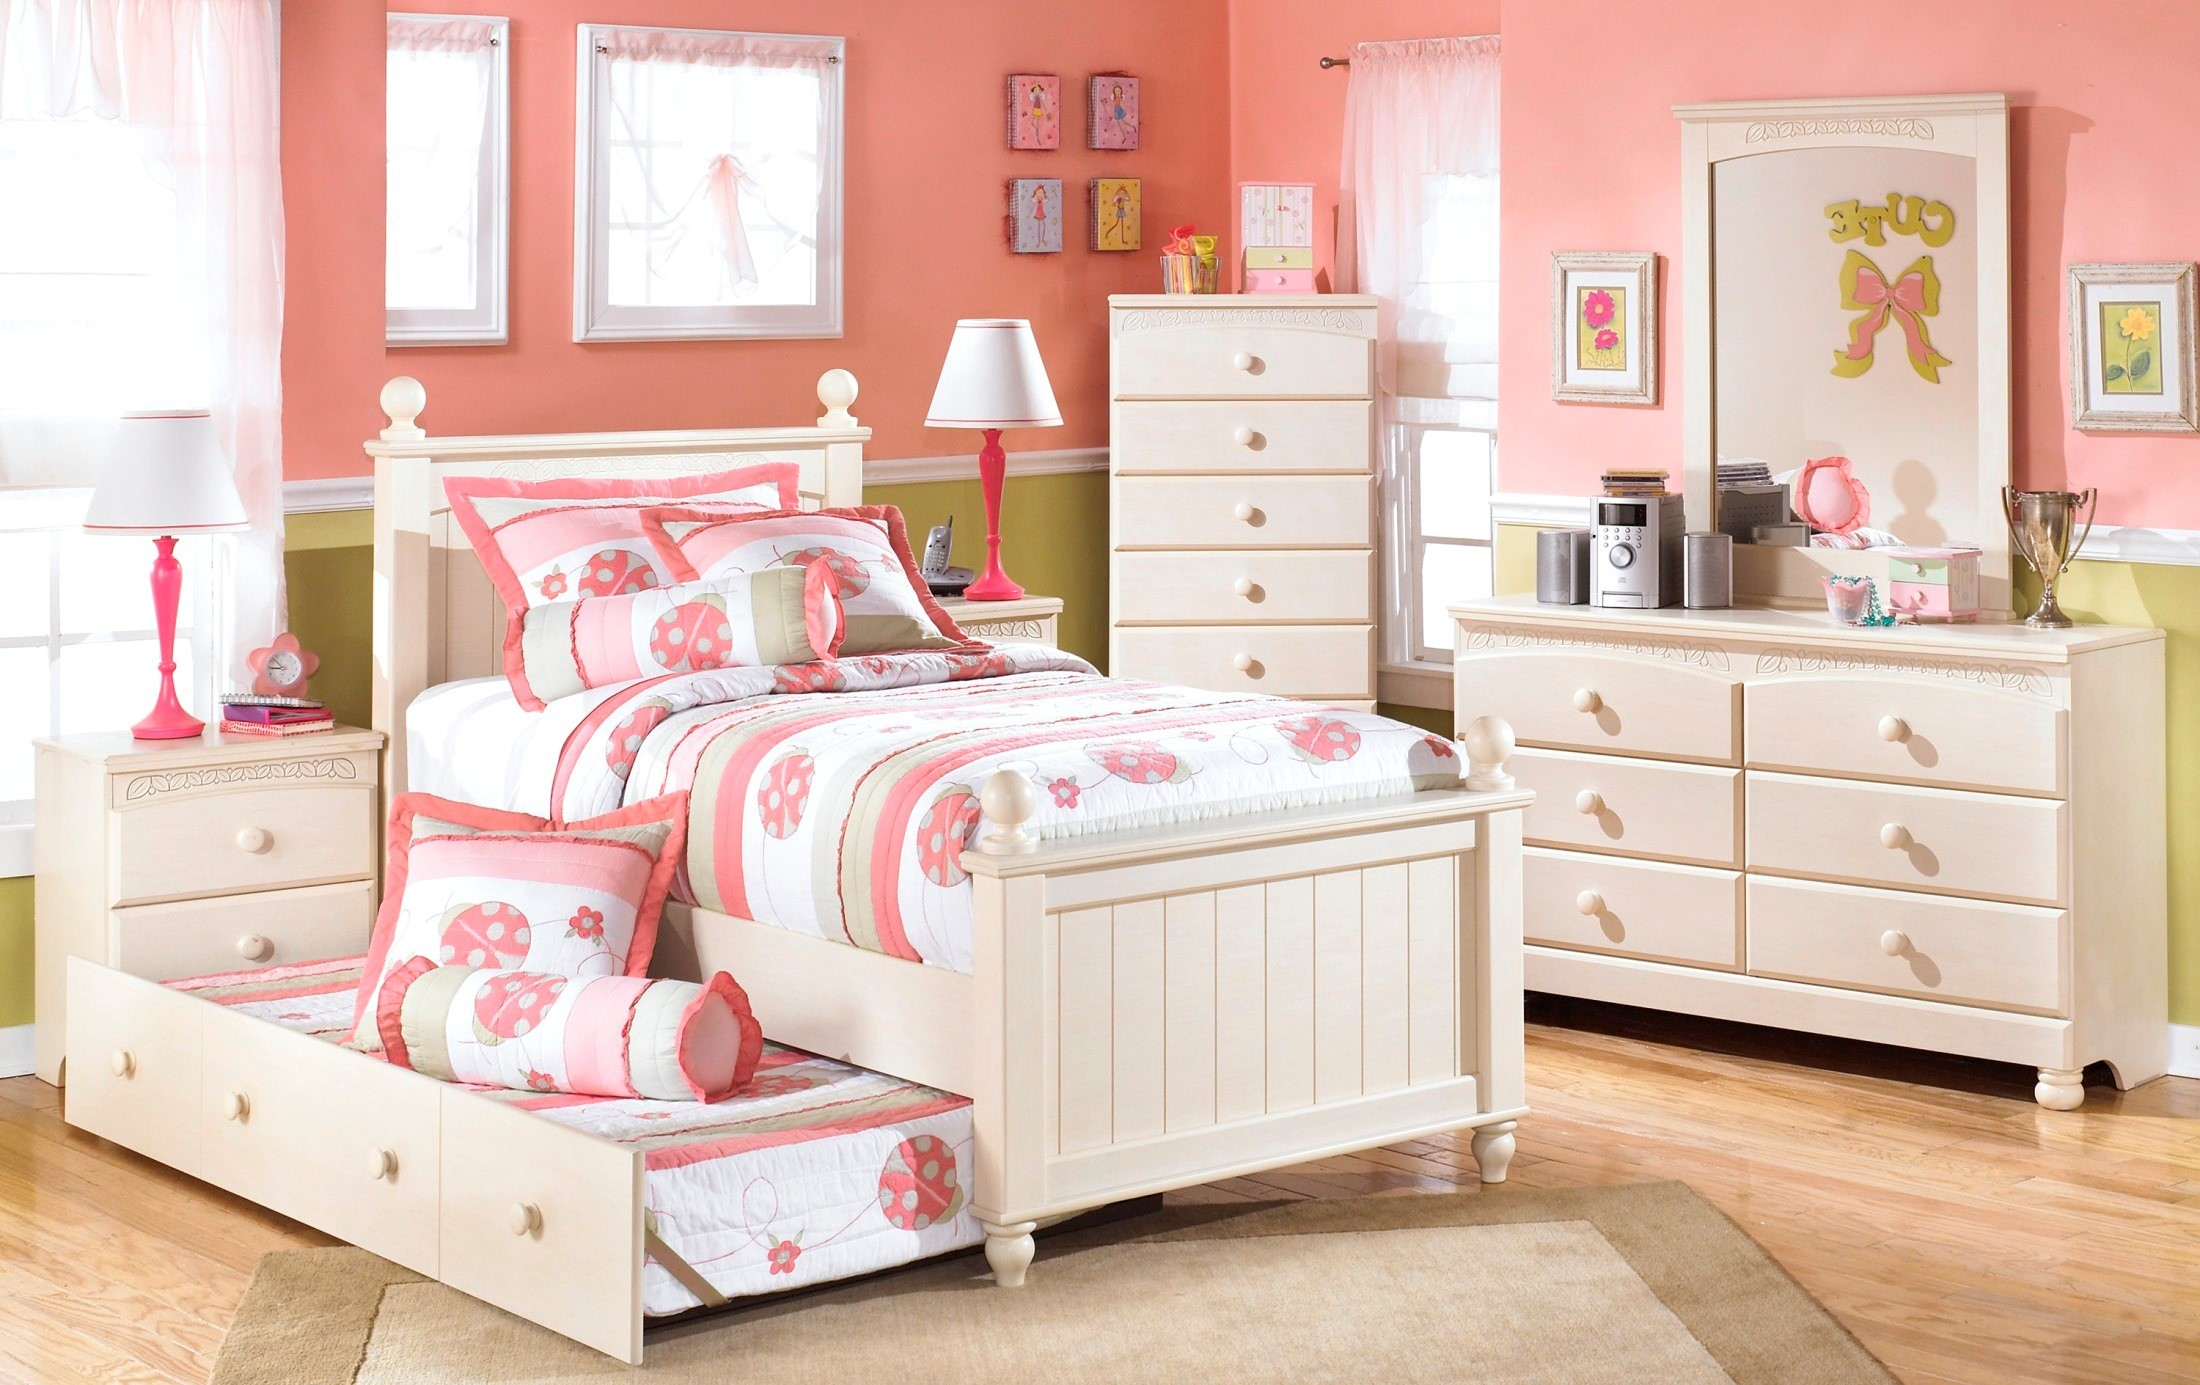 Cottage retreat youth poster trundle bedroom set from ashley coleman furniture for Cottage retreat bedroom set